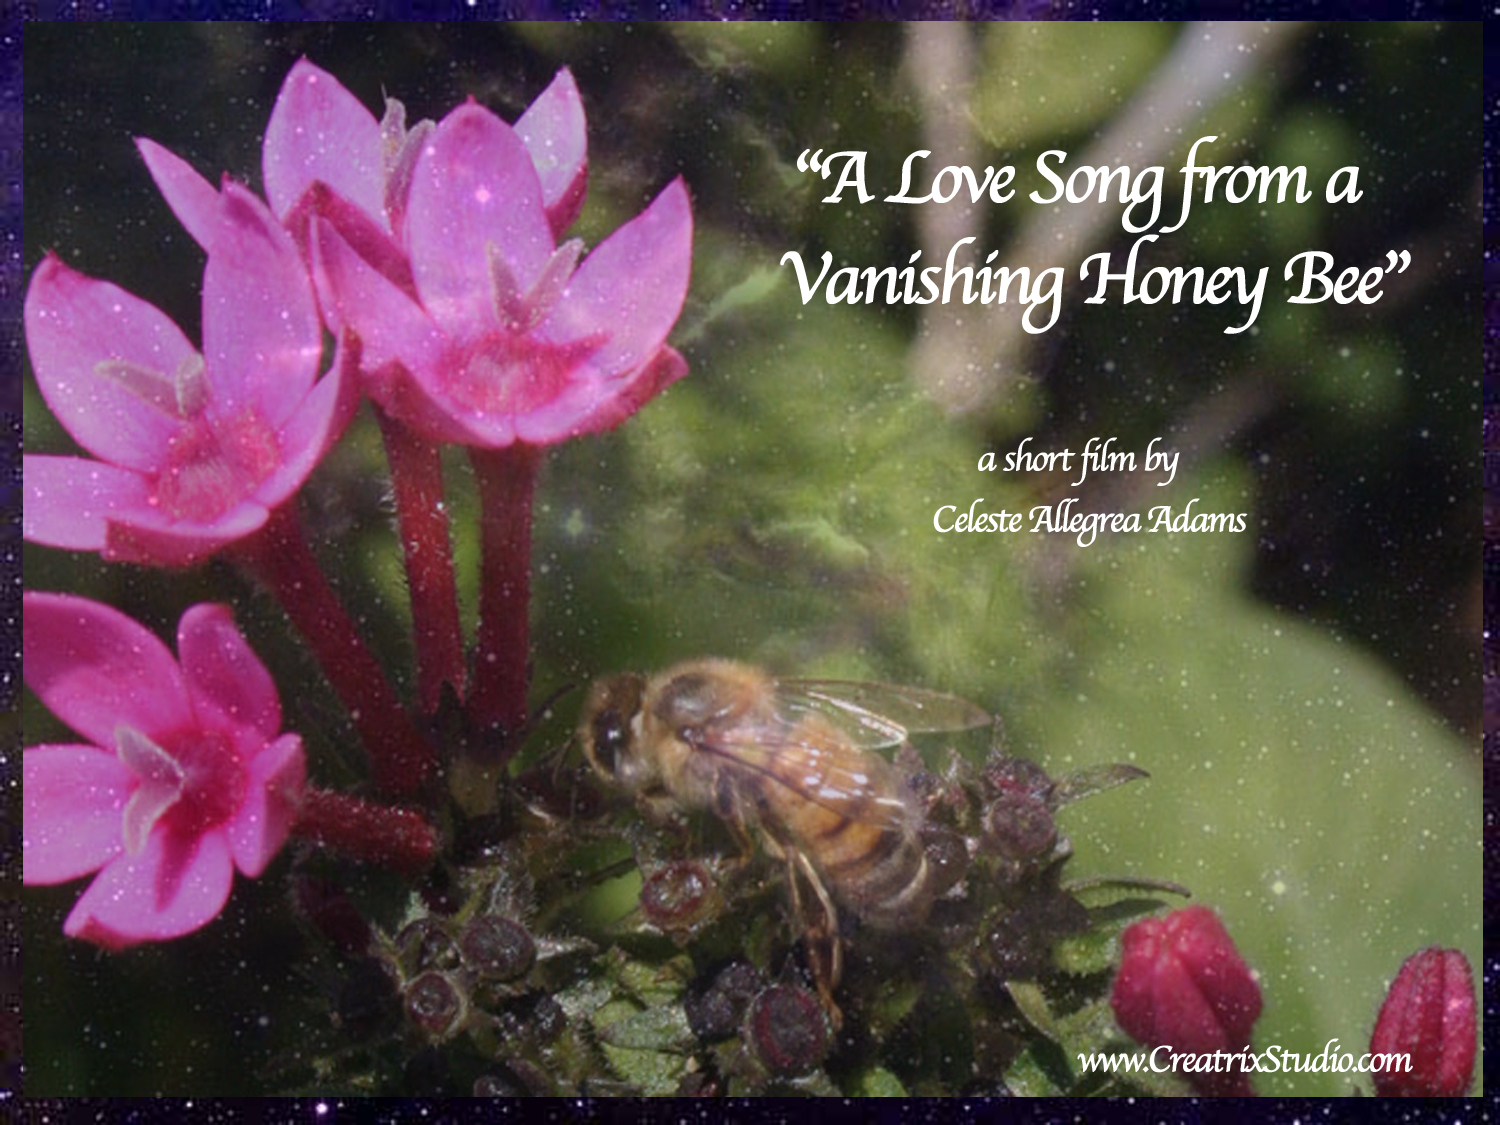 A Love Song from a Vanishing Honeybee